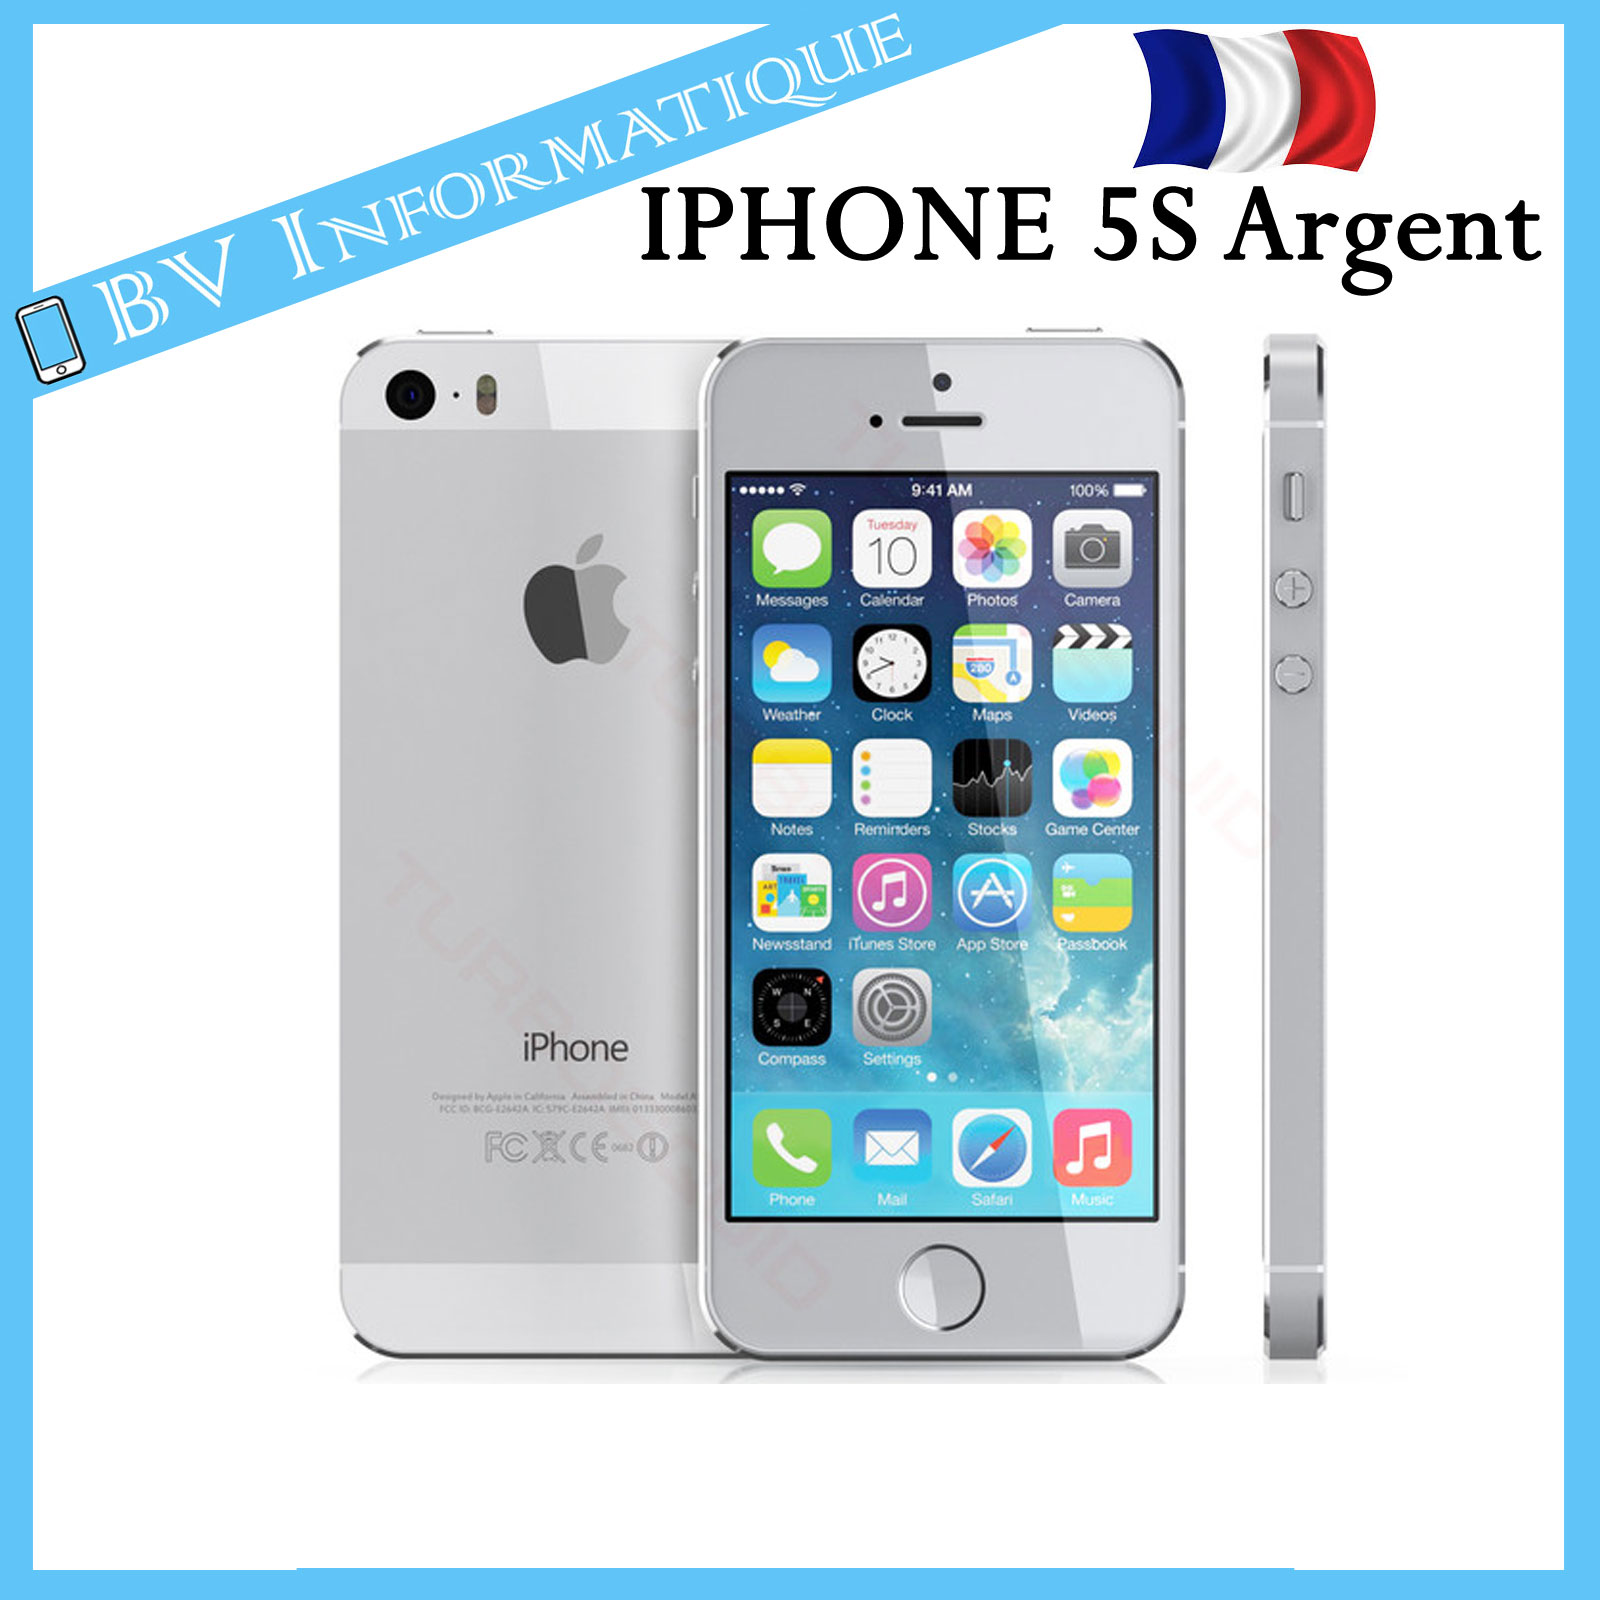 apple iphone 5s 16 go argent d bloqu tout op rateur garantie 6 mois ebay. Black Bedroom Furniture Sets. Home Design Ideas